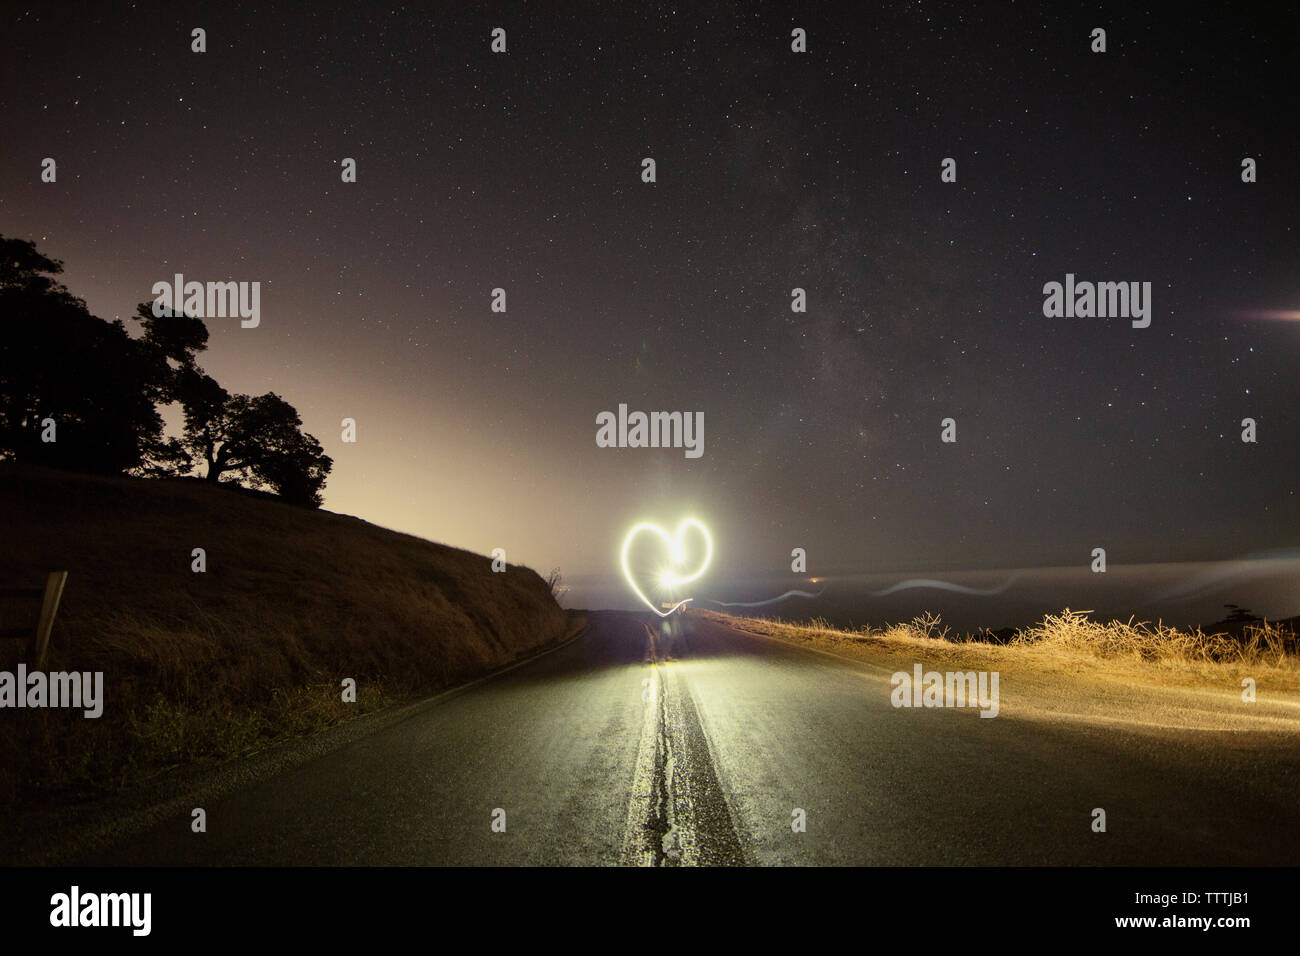 Person making heart shape while performing light painting on mountain road at night - Stock Image